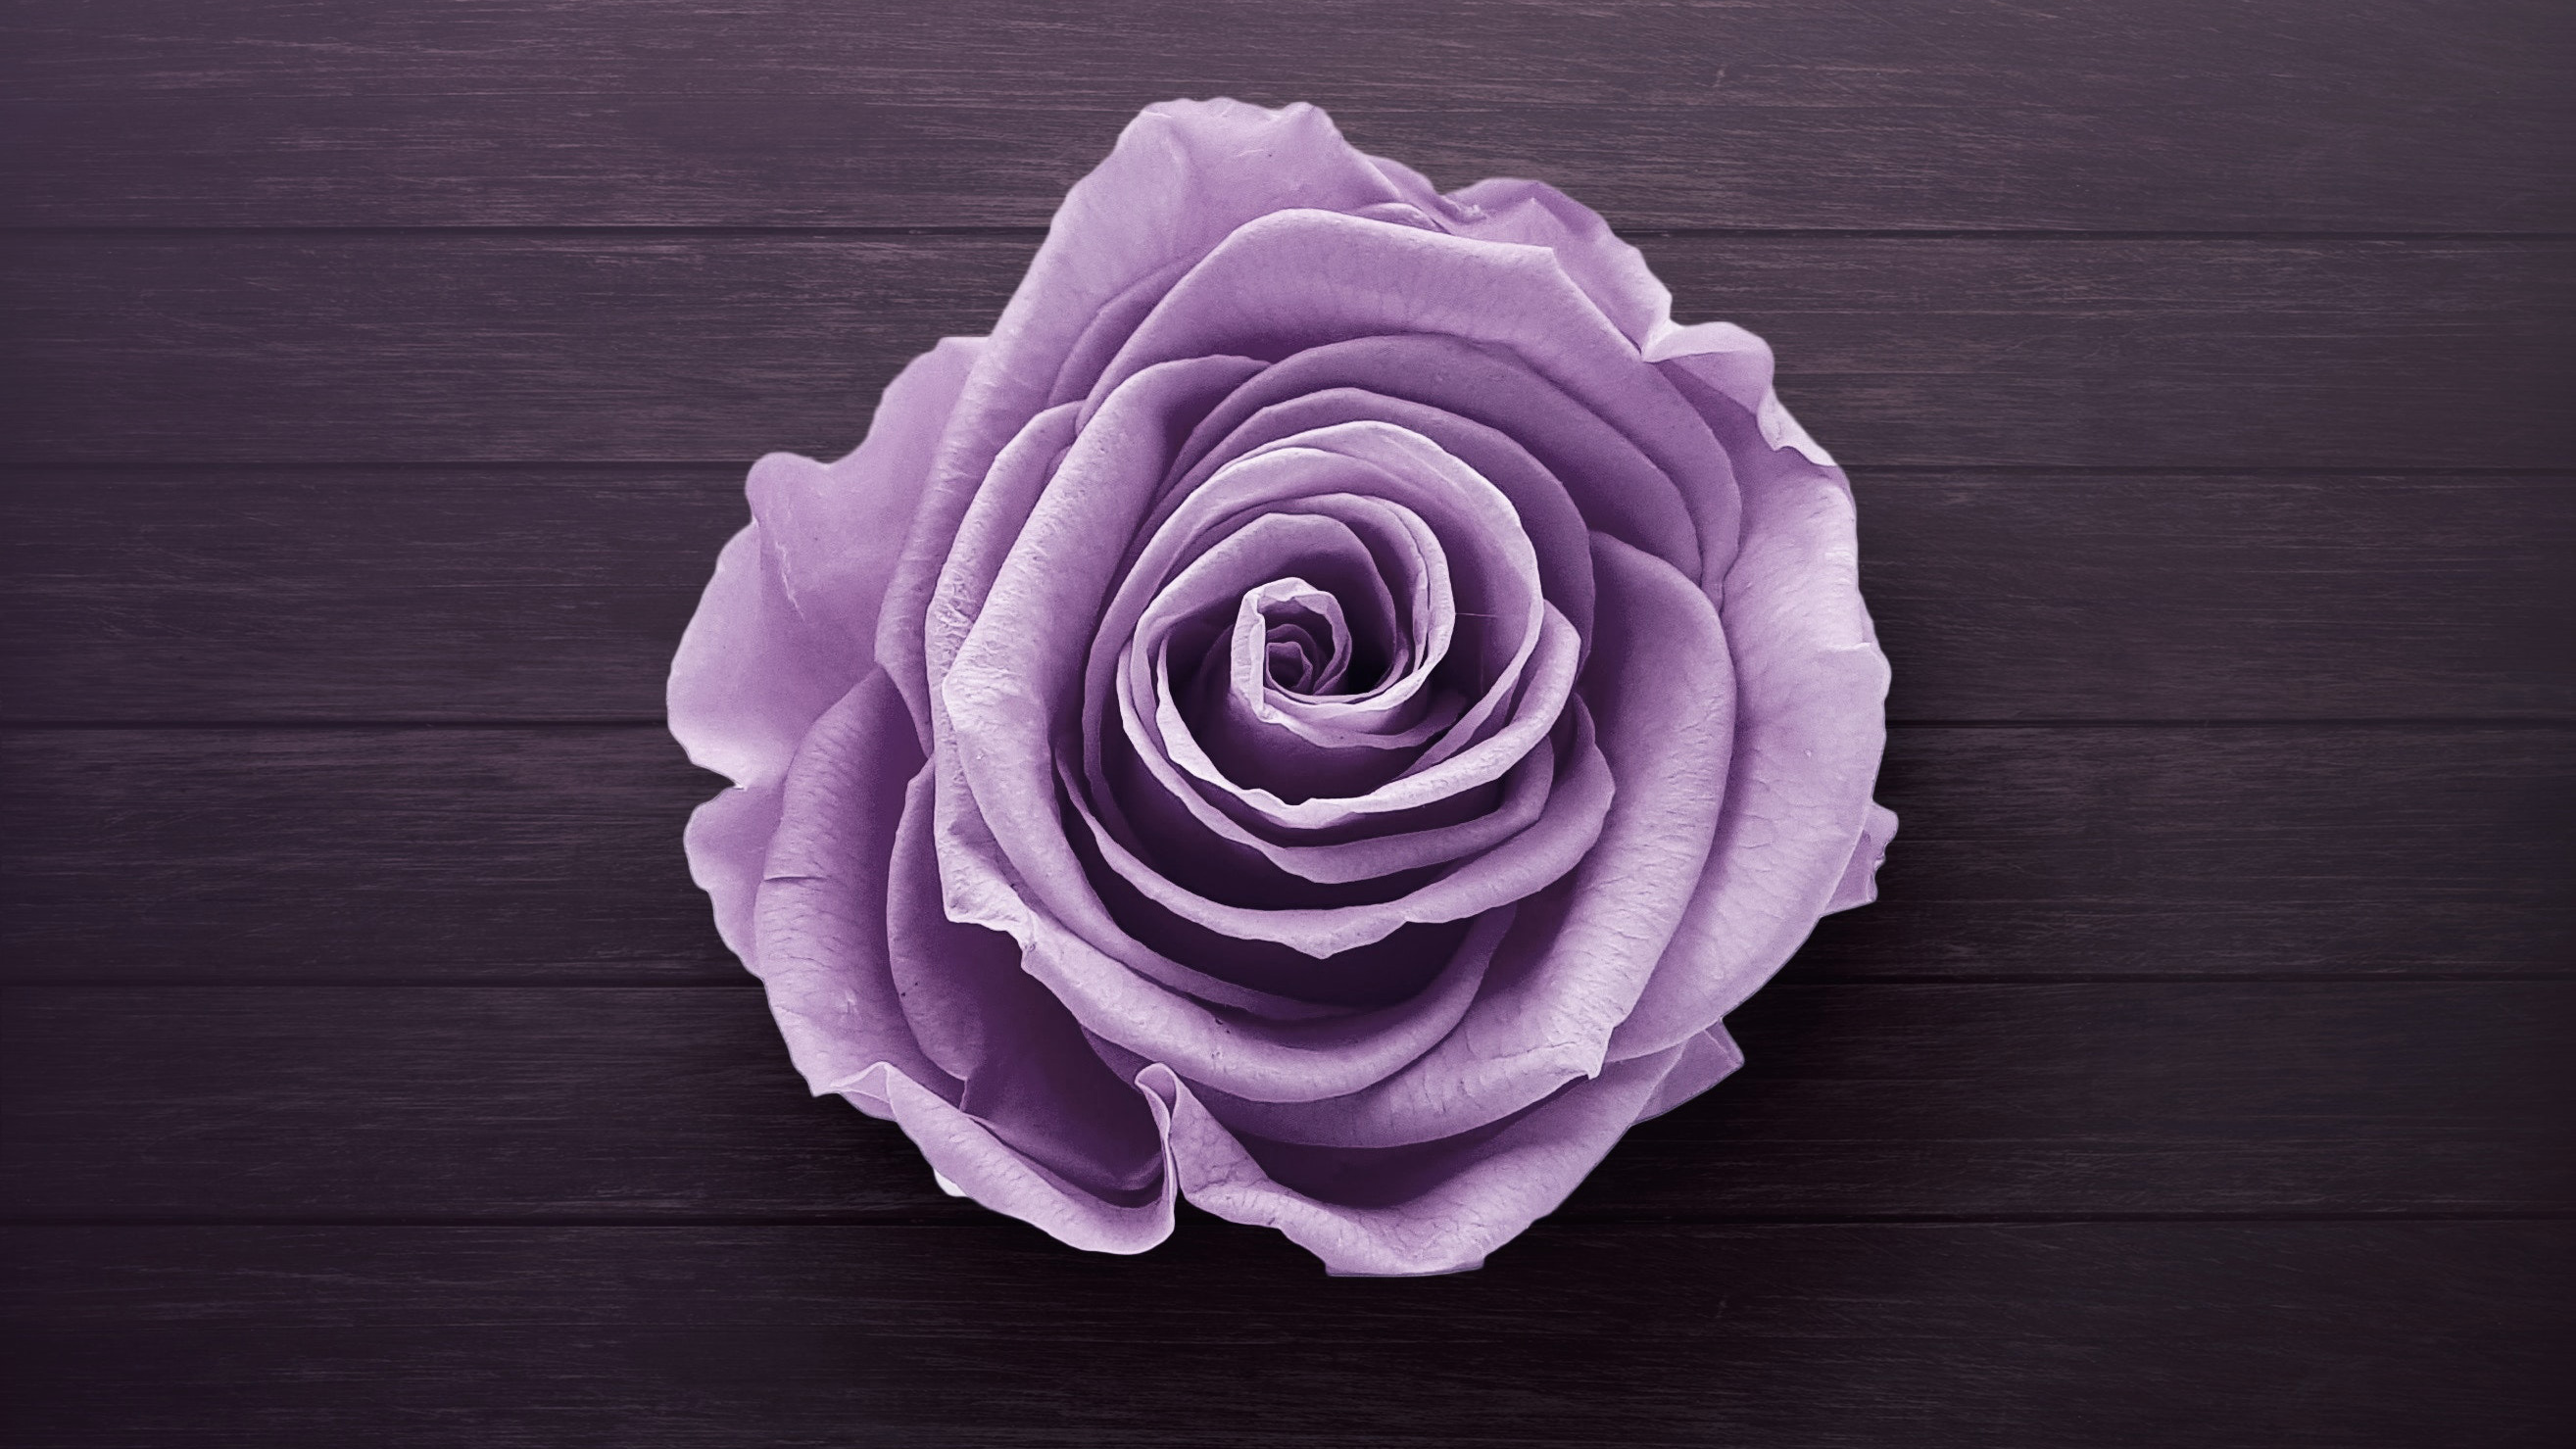 1920x1080 Purple Rose Laptop Full Hd 1080p Hd 4k Wallpapers Images Backgrounds Photos And Pictures